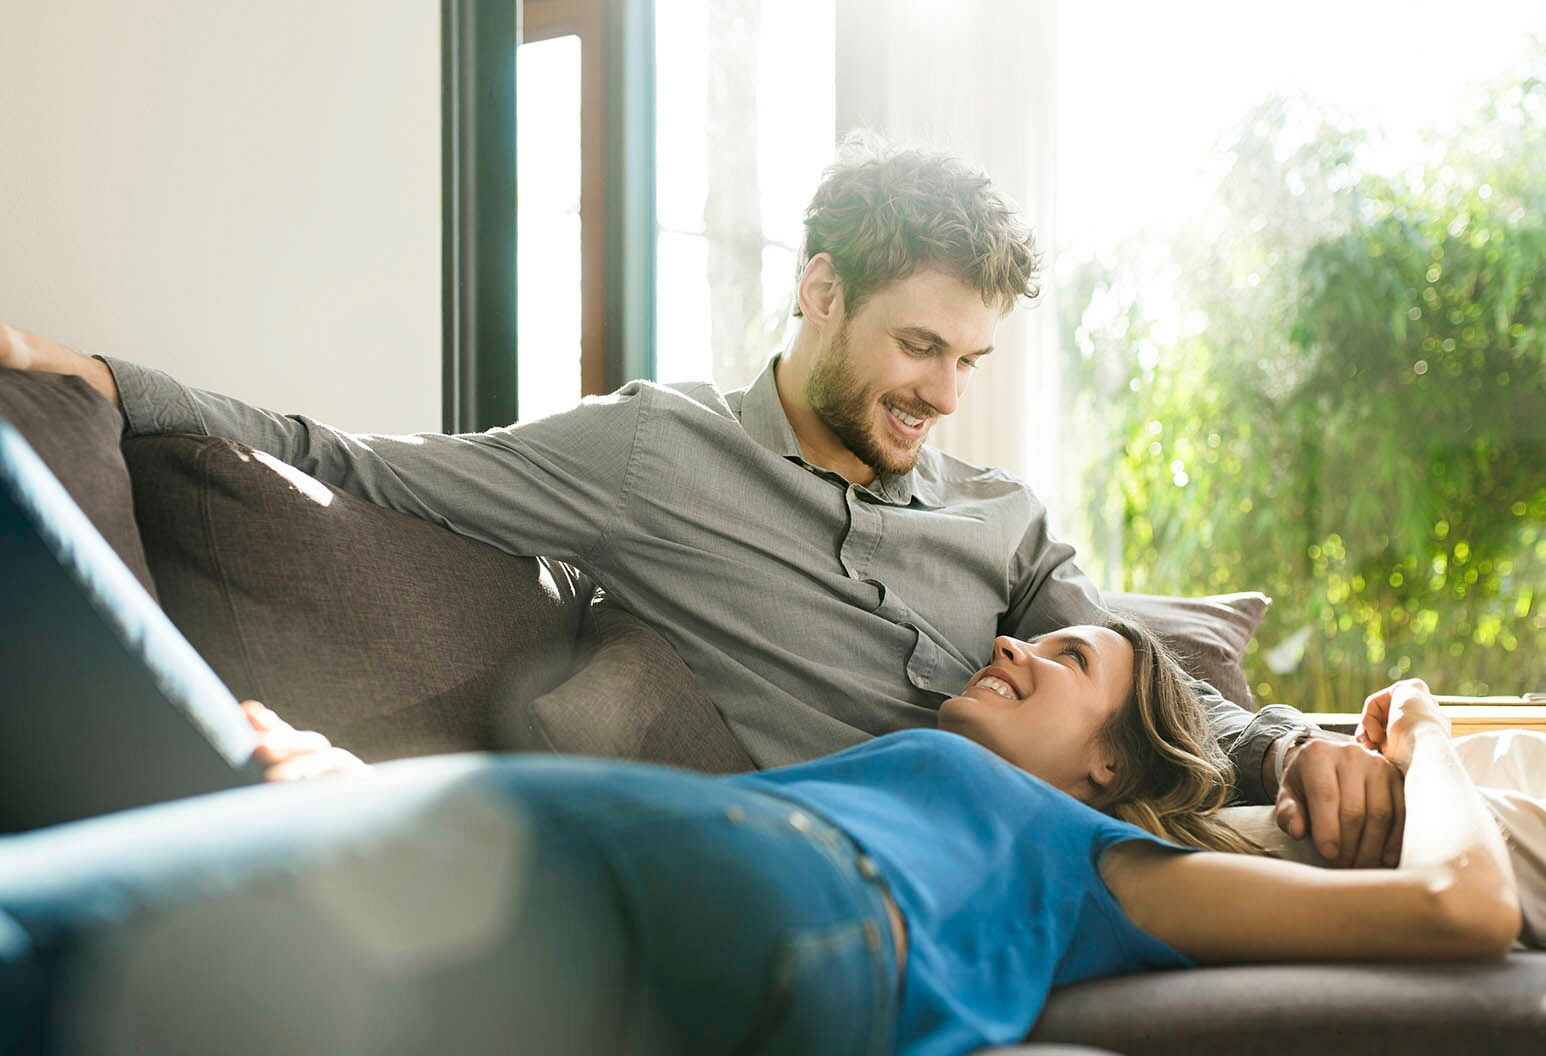 affectionate couple smiling at each other while relaxing on couch in modern design living room with large garden windows